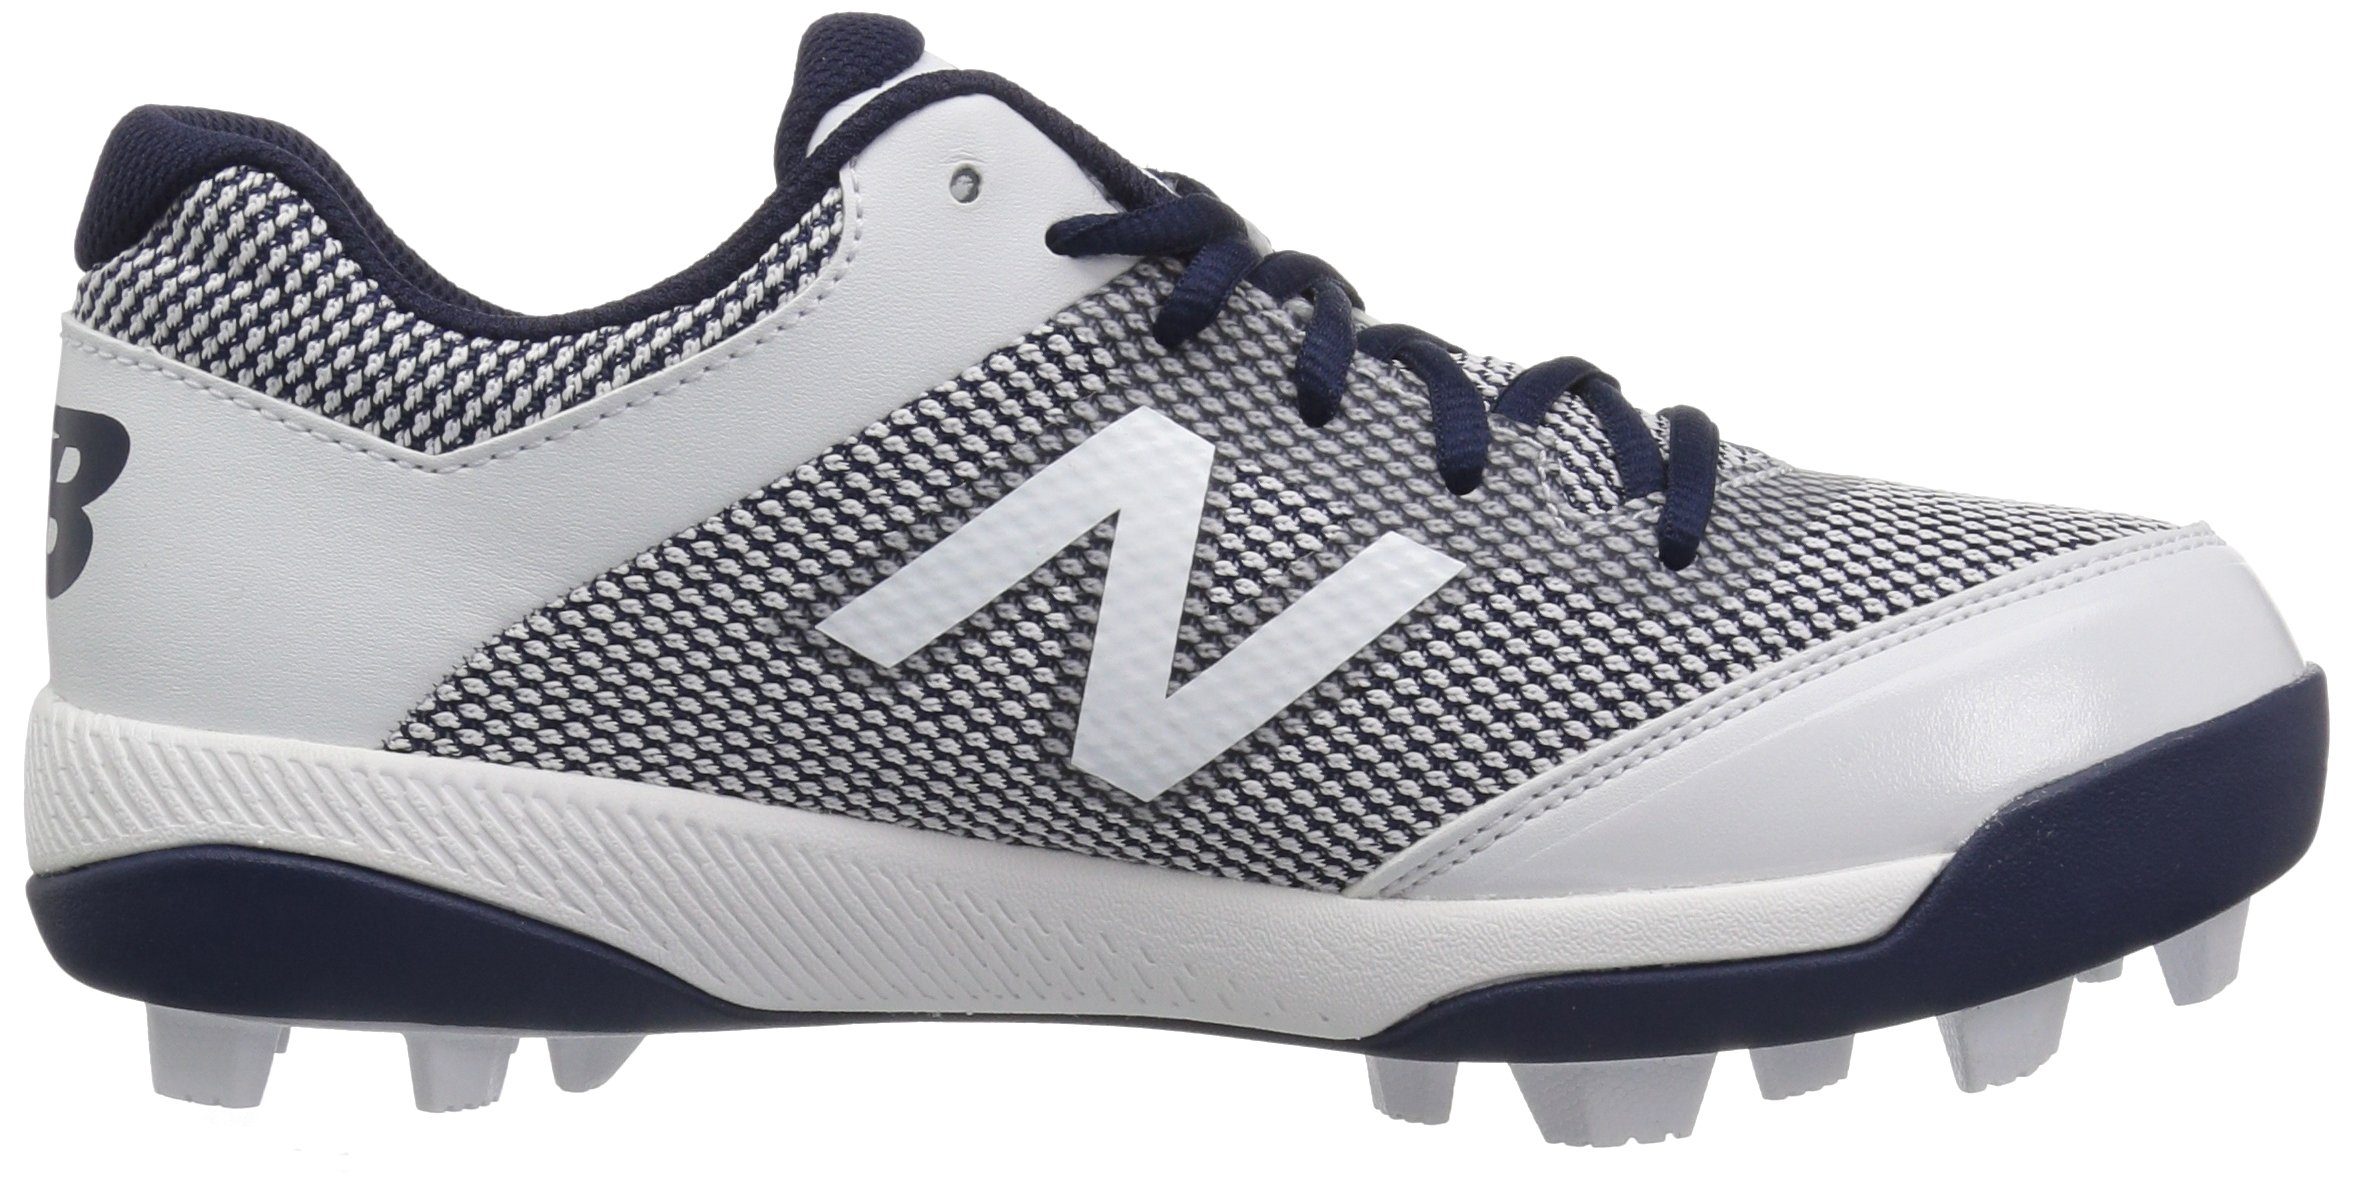 New Balance Boys' 4040v4, Navy/White, 1 W US Little Kid by New Balance (Image #7)